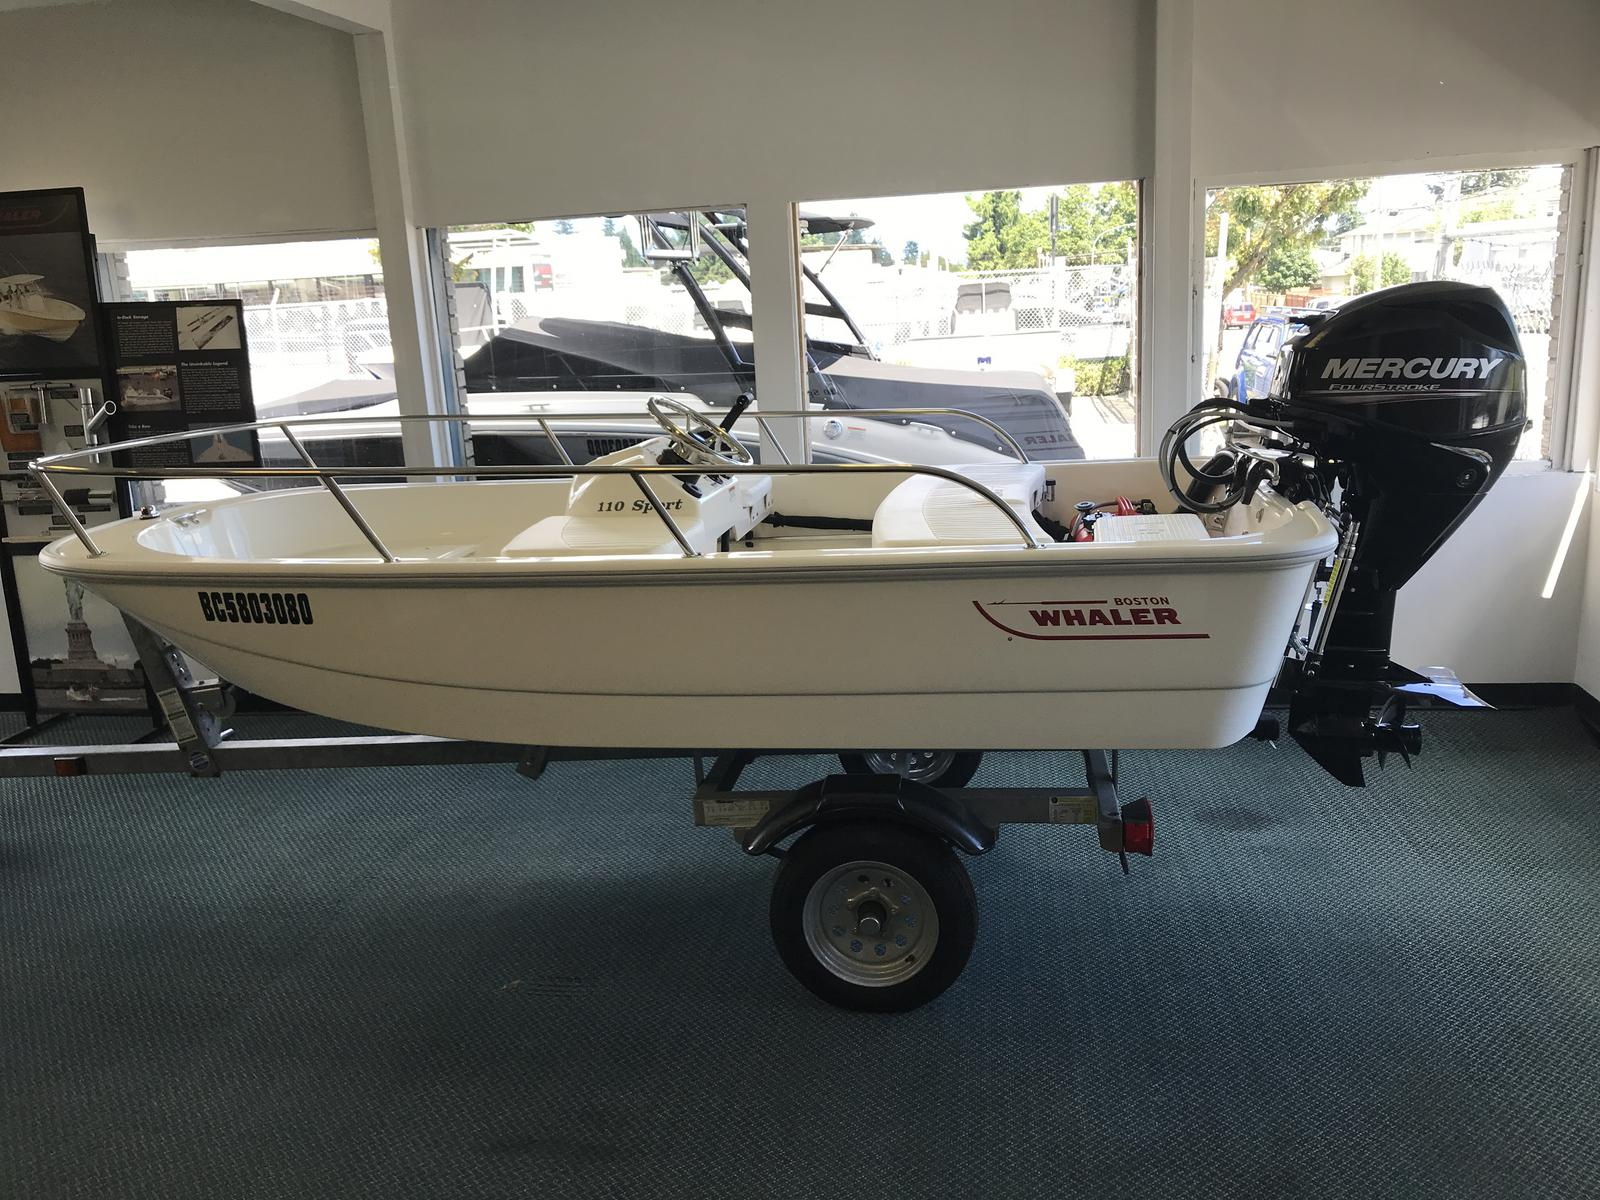 2018 Boston Whaler boat for sale, model of the boat is 110 Sport & Image # 1 of 2